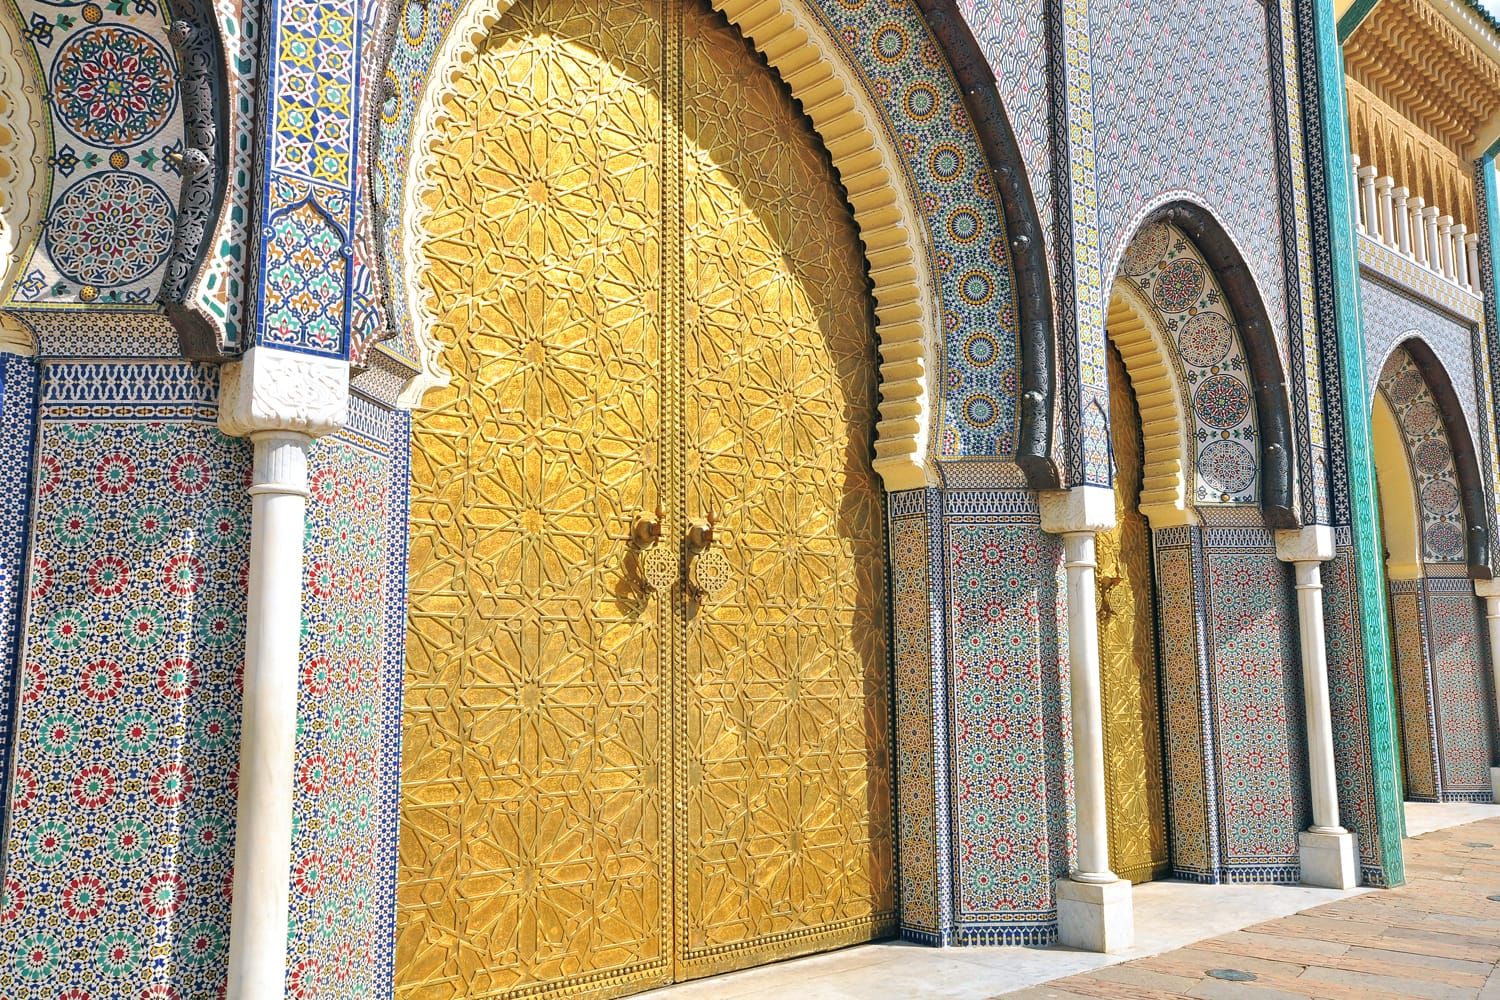 Golden gates at the Royal Palace in Fez, Morocco